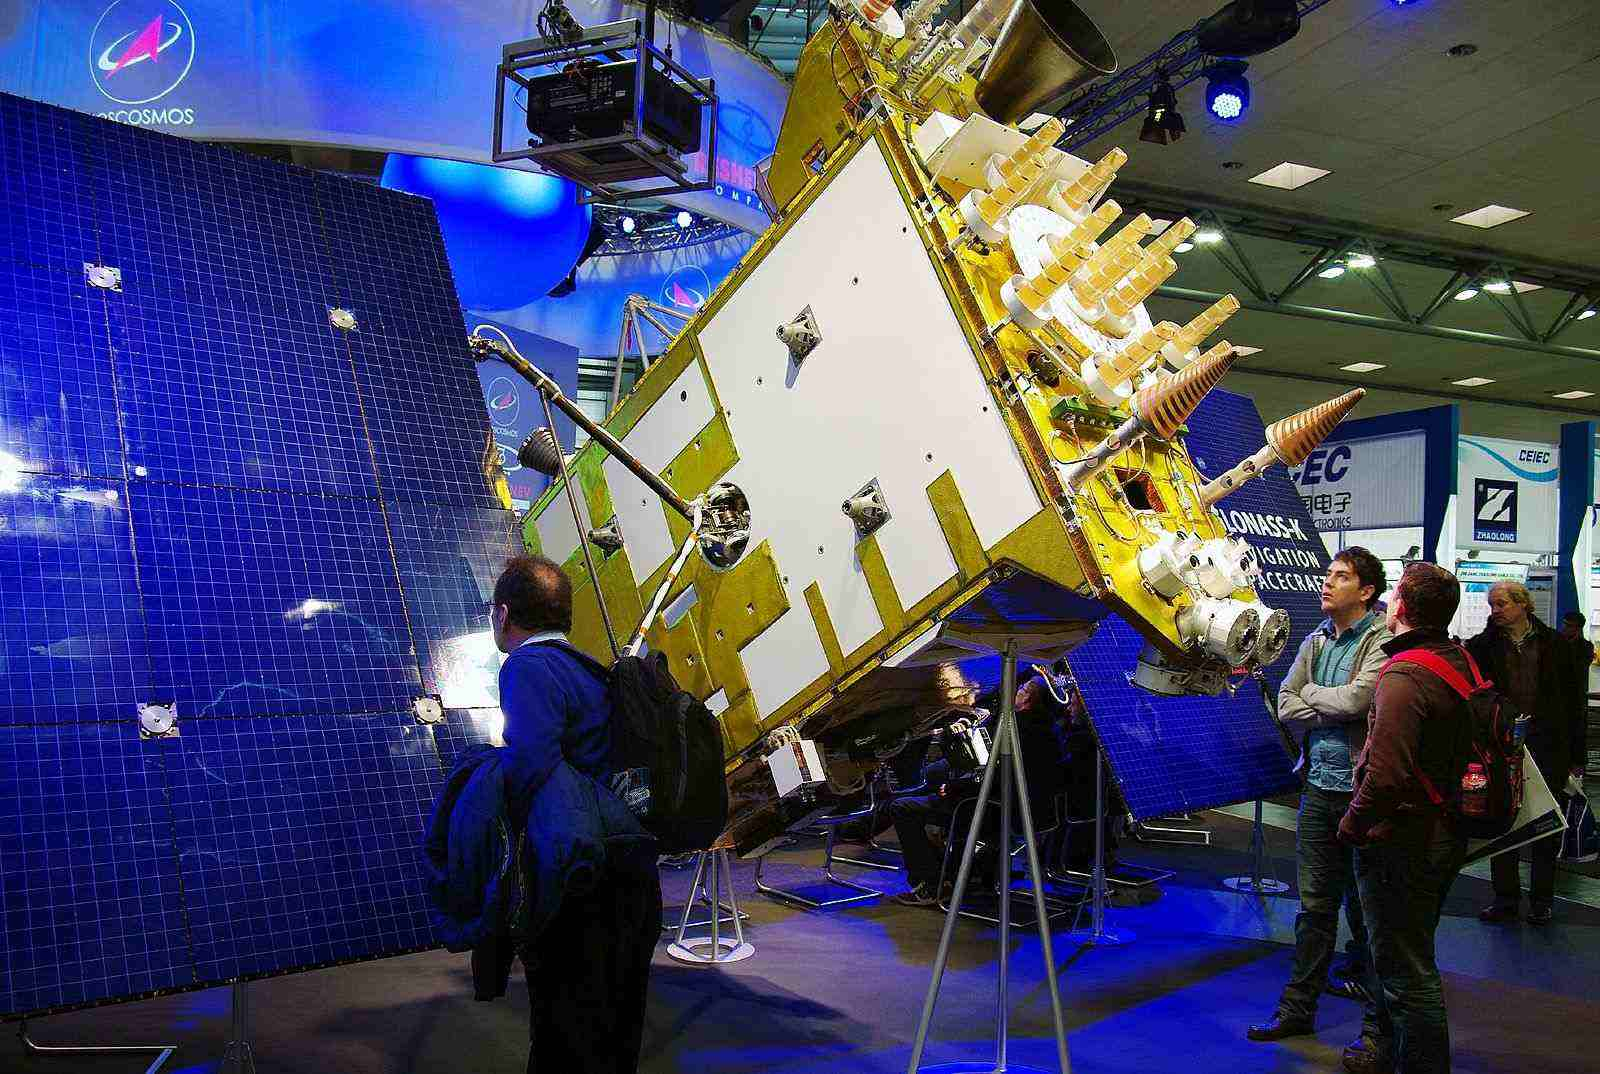 Russian_Navigation_Spacecraft_Glonass_K1_at_CeBIT